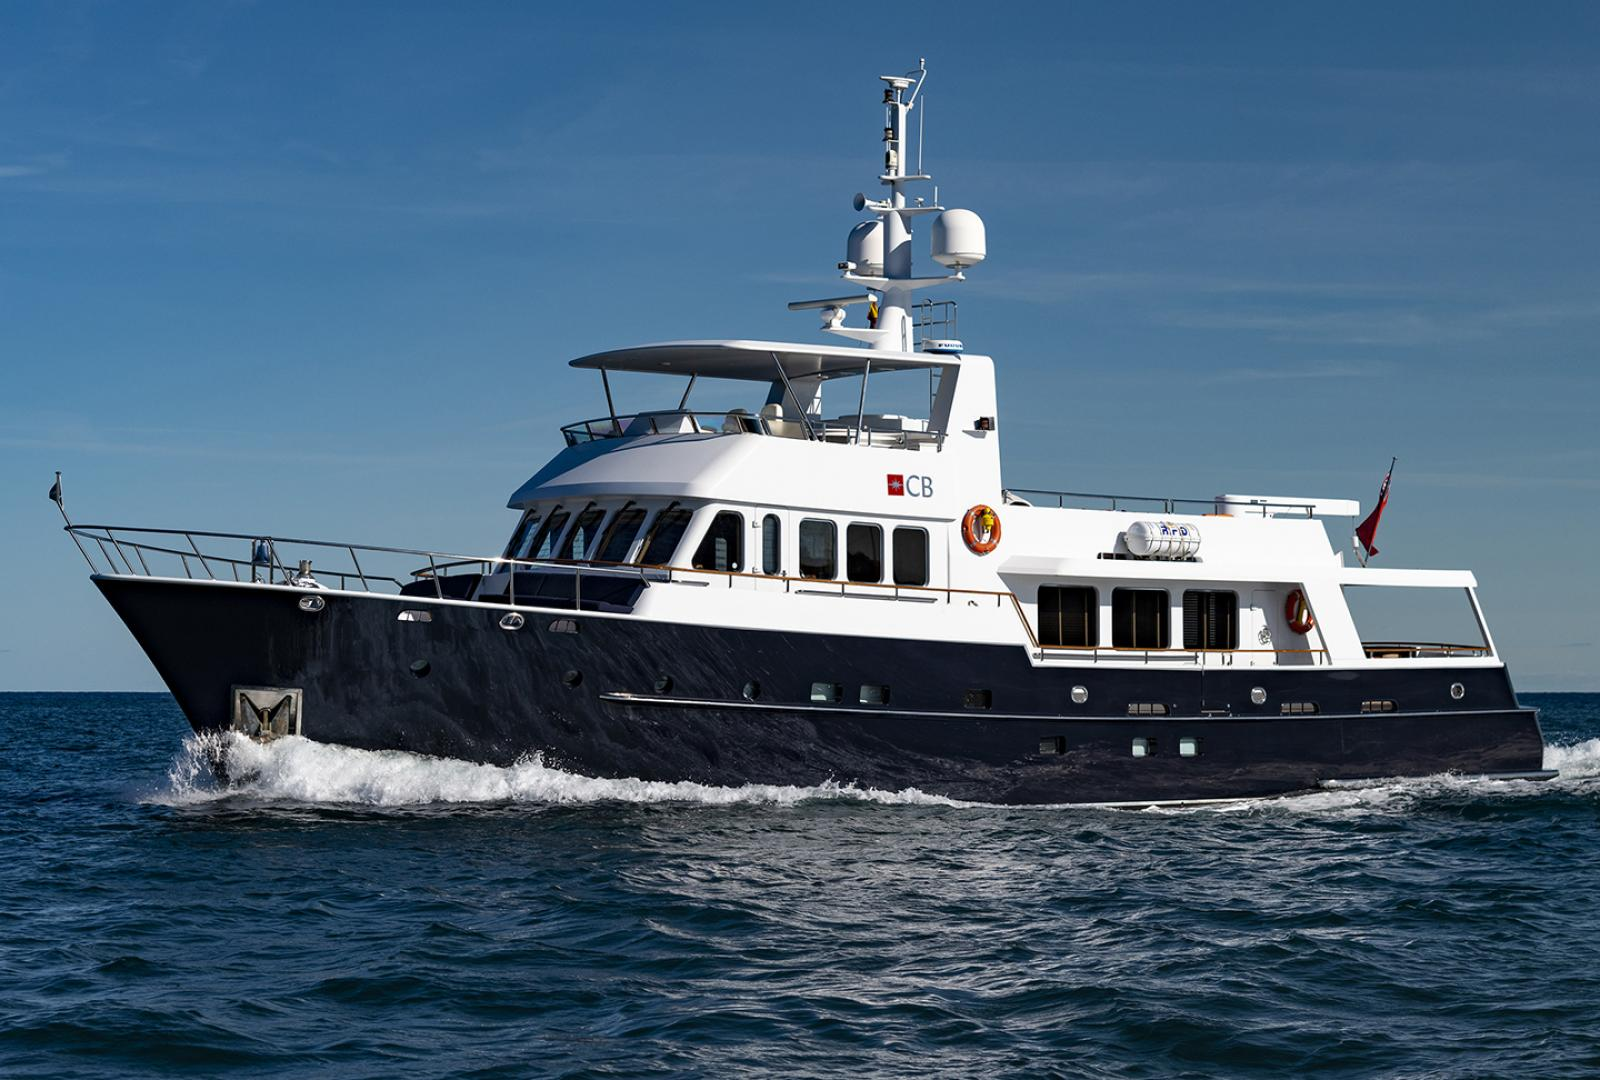 The Commercial Break, a Moonen 90 Offshore has just had a major price reduction